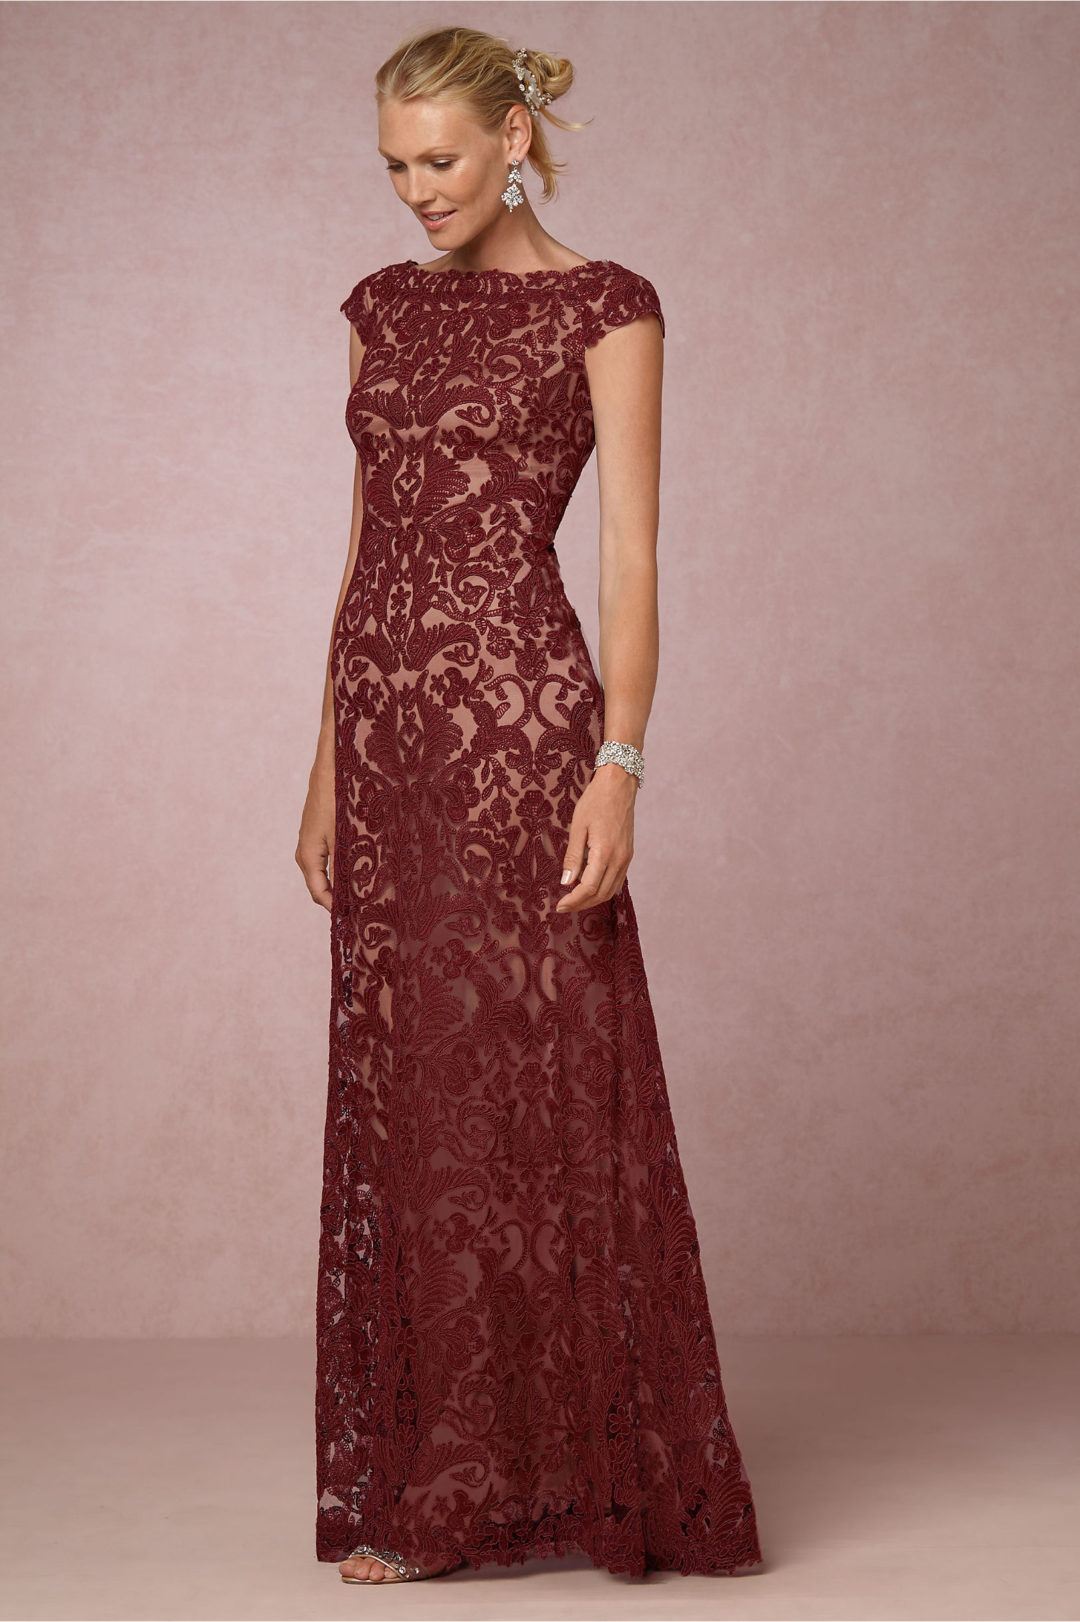 Mother of the Bride Dresses on Sale for Black Friday 2016